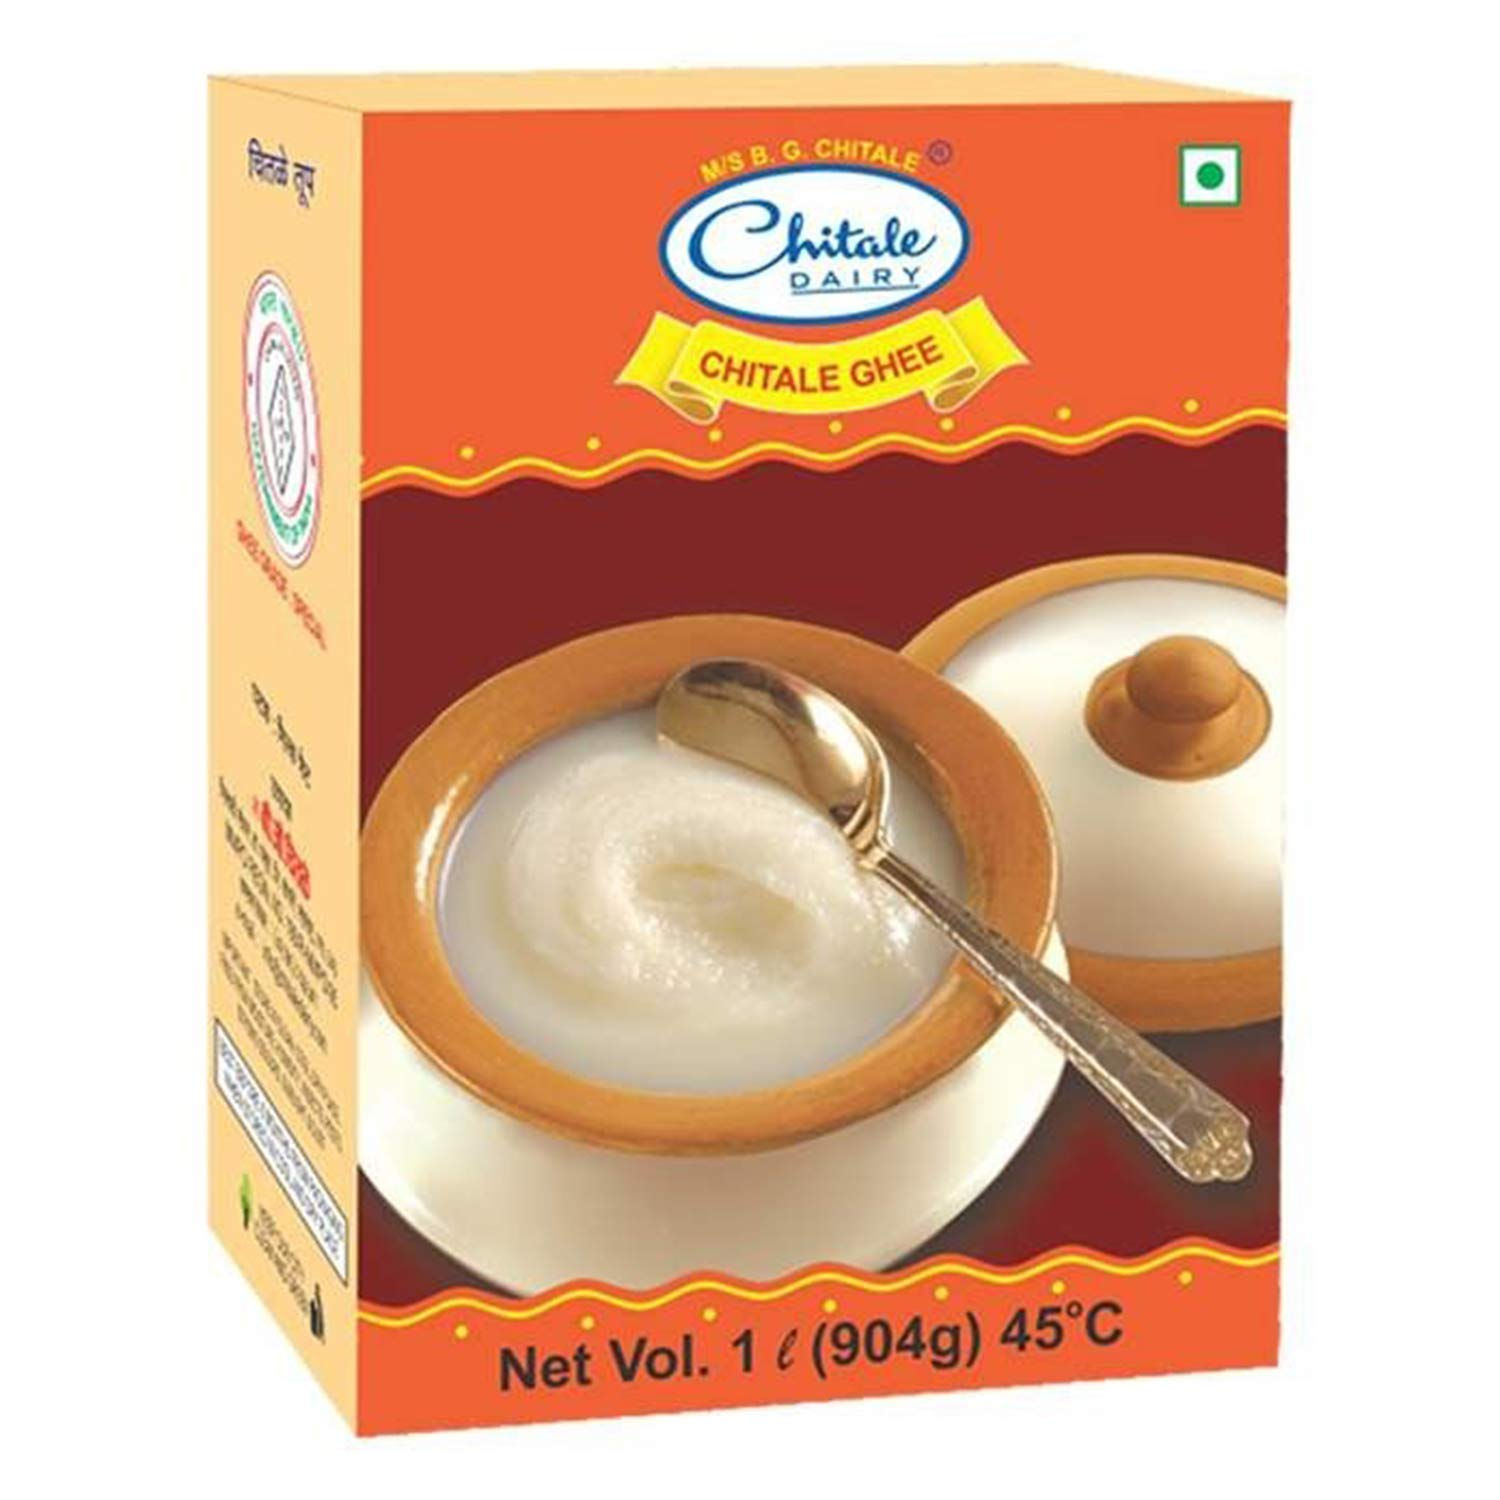 Chitale Dairy Ghee Box : 1 Litre